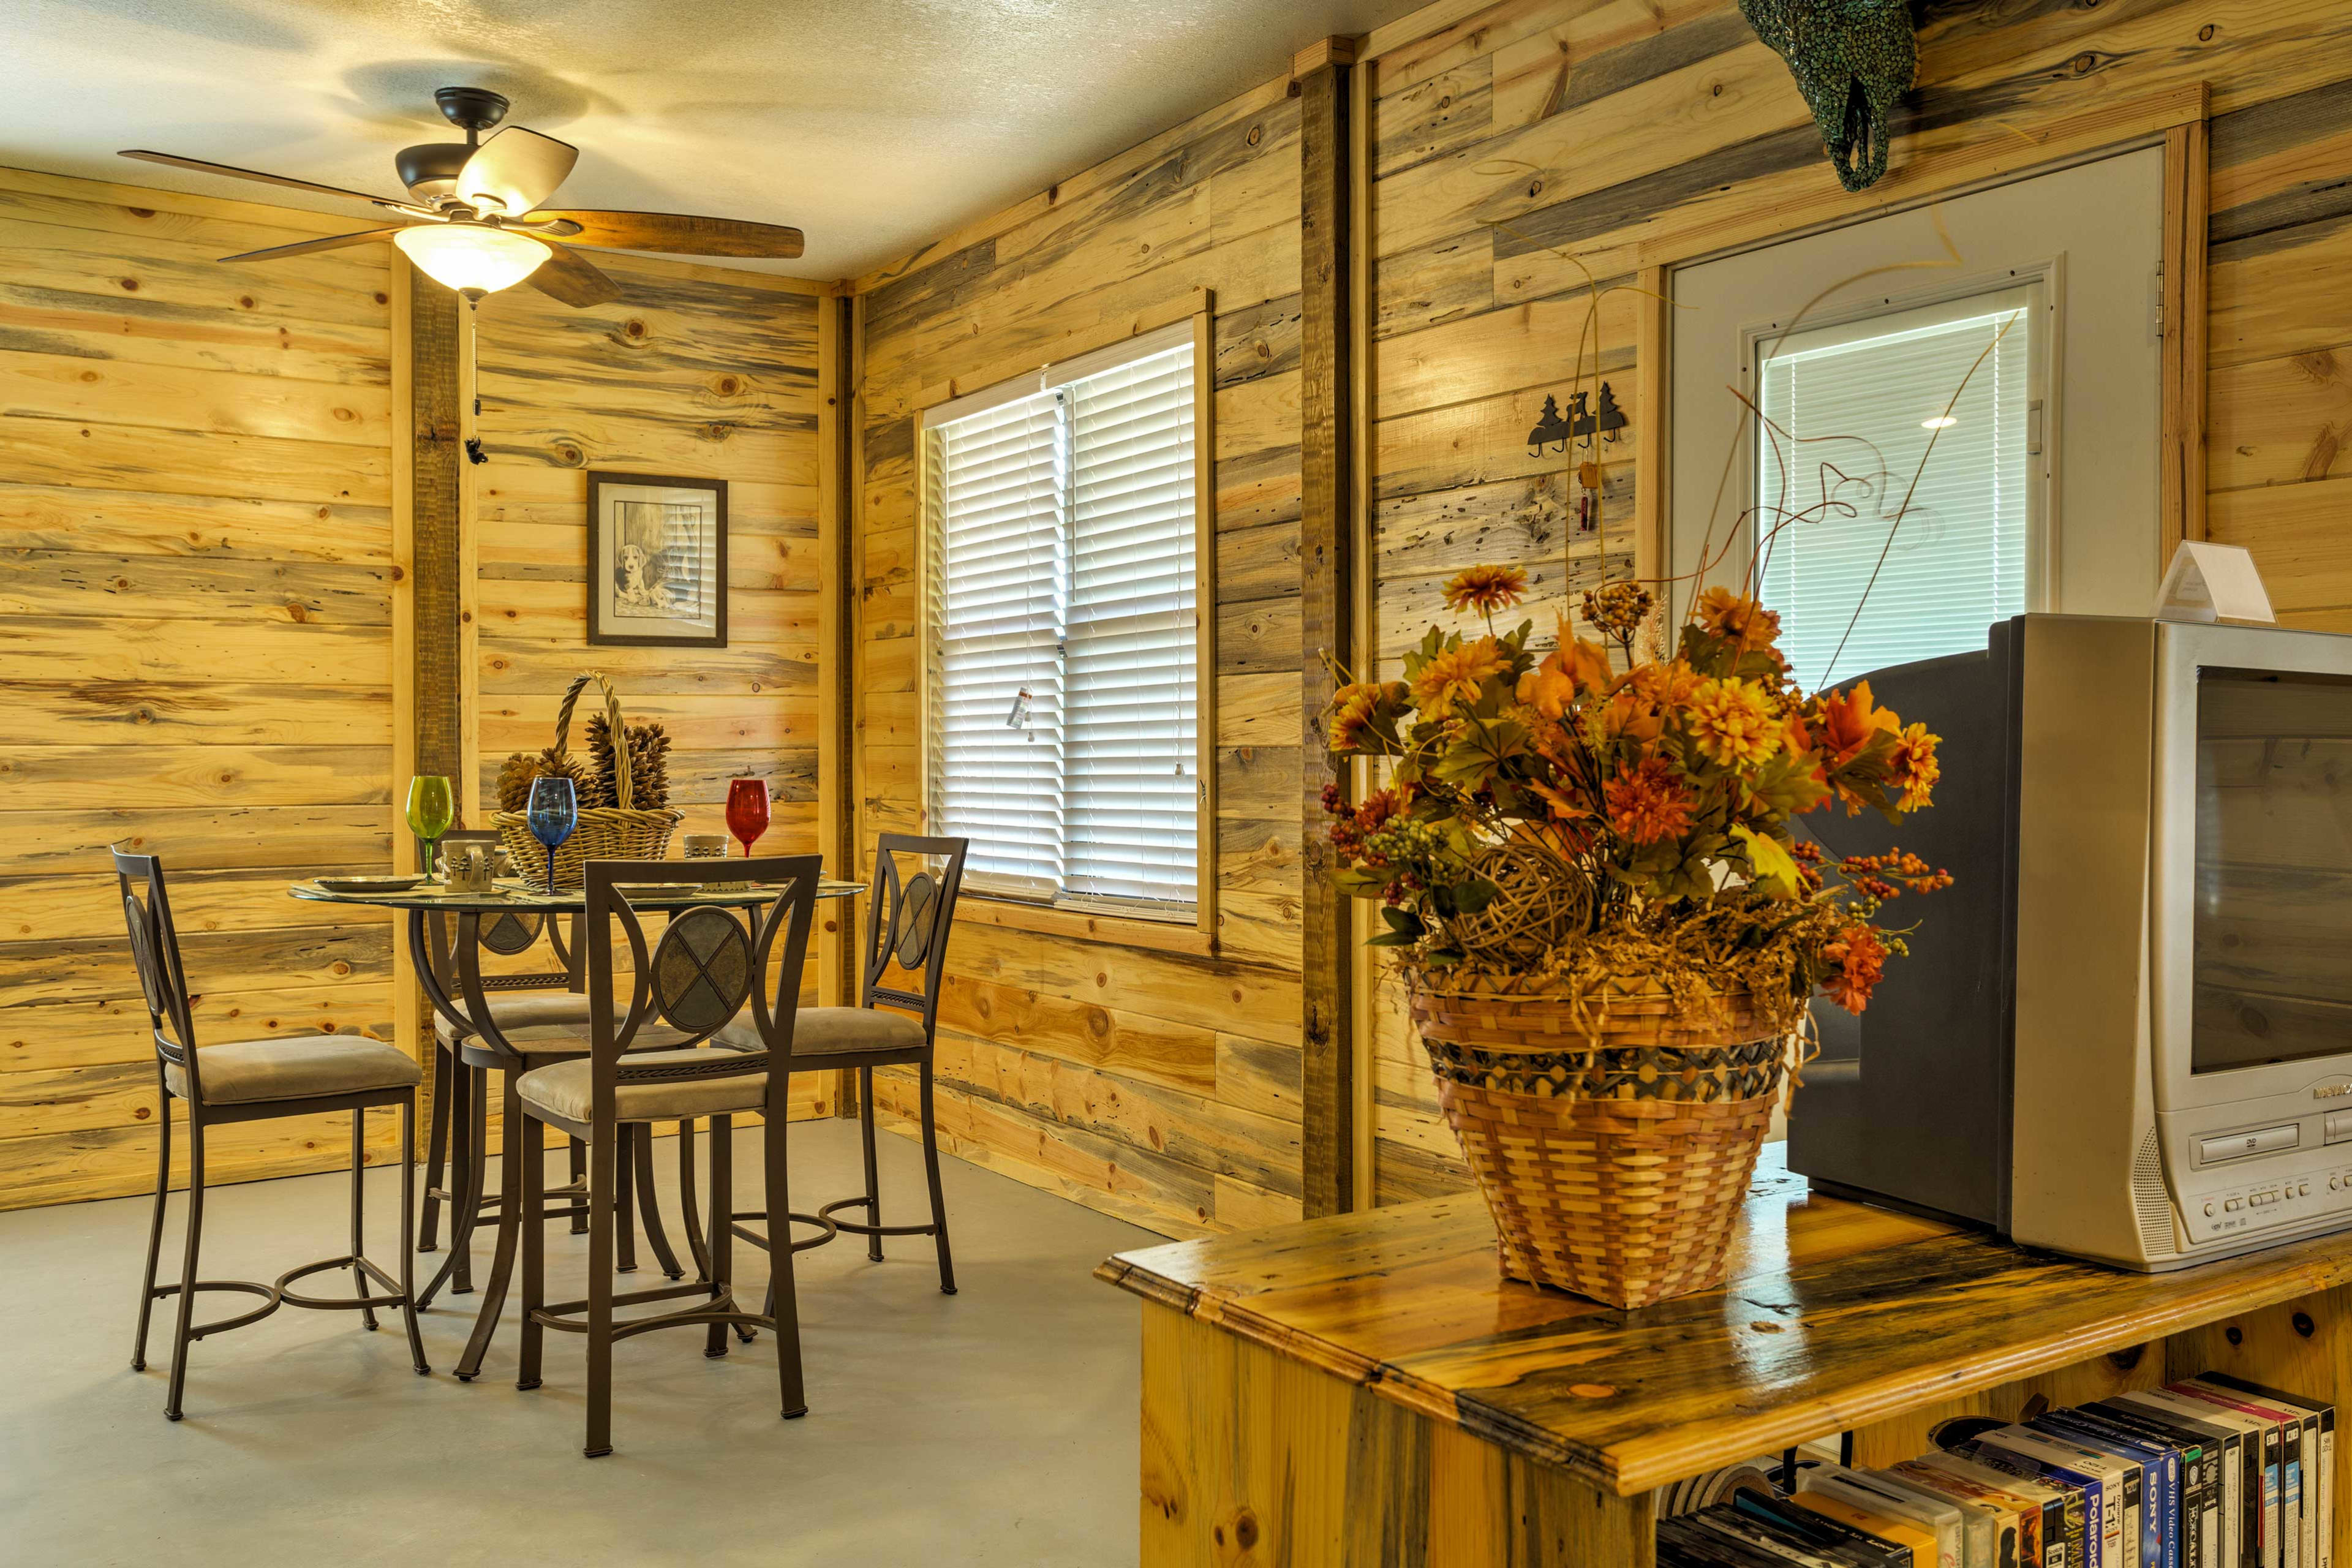 Wood walls and homey furniture make this the perfect lake house.